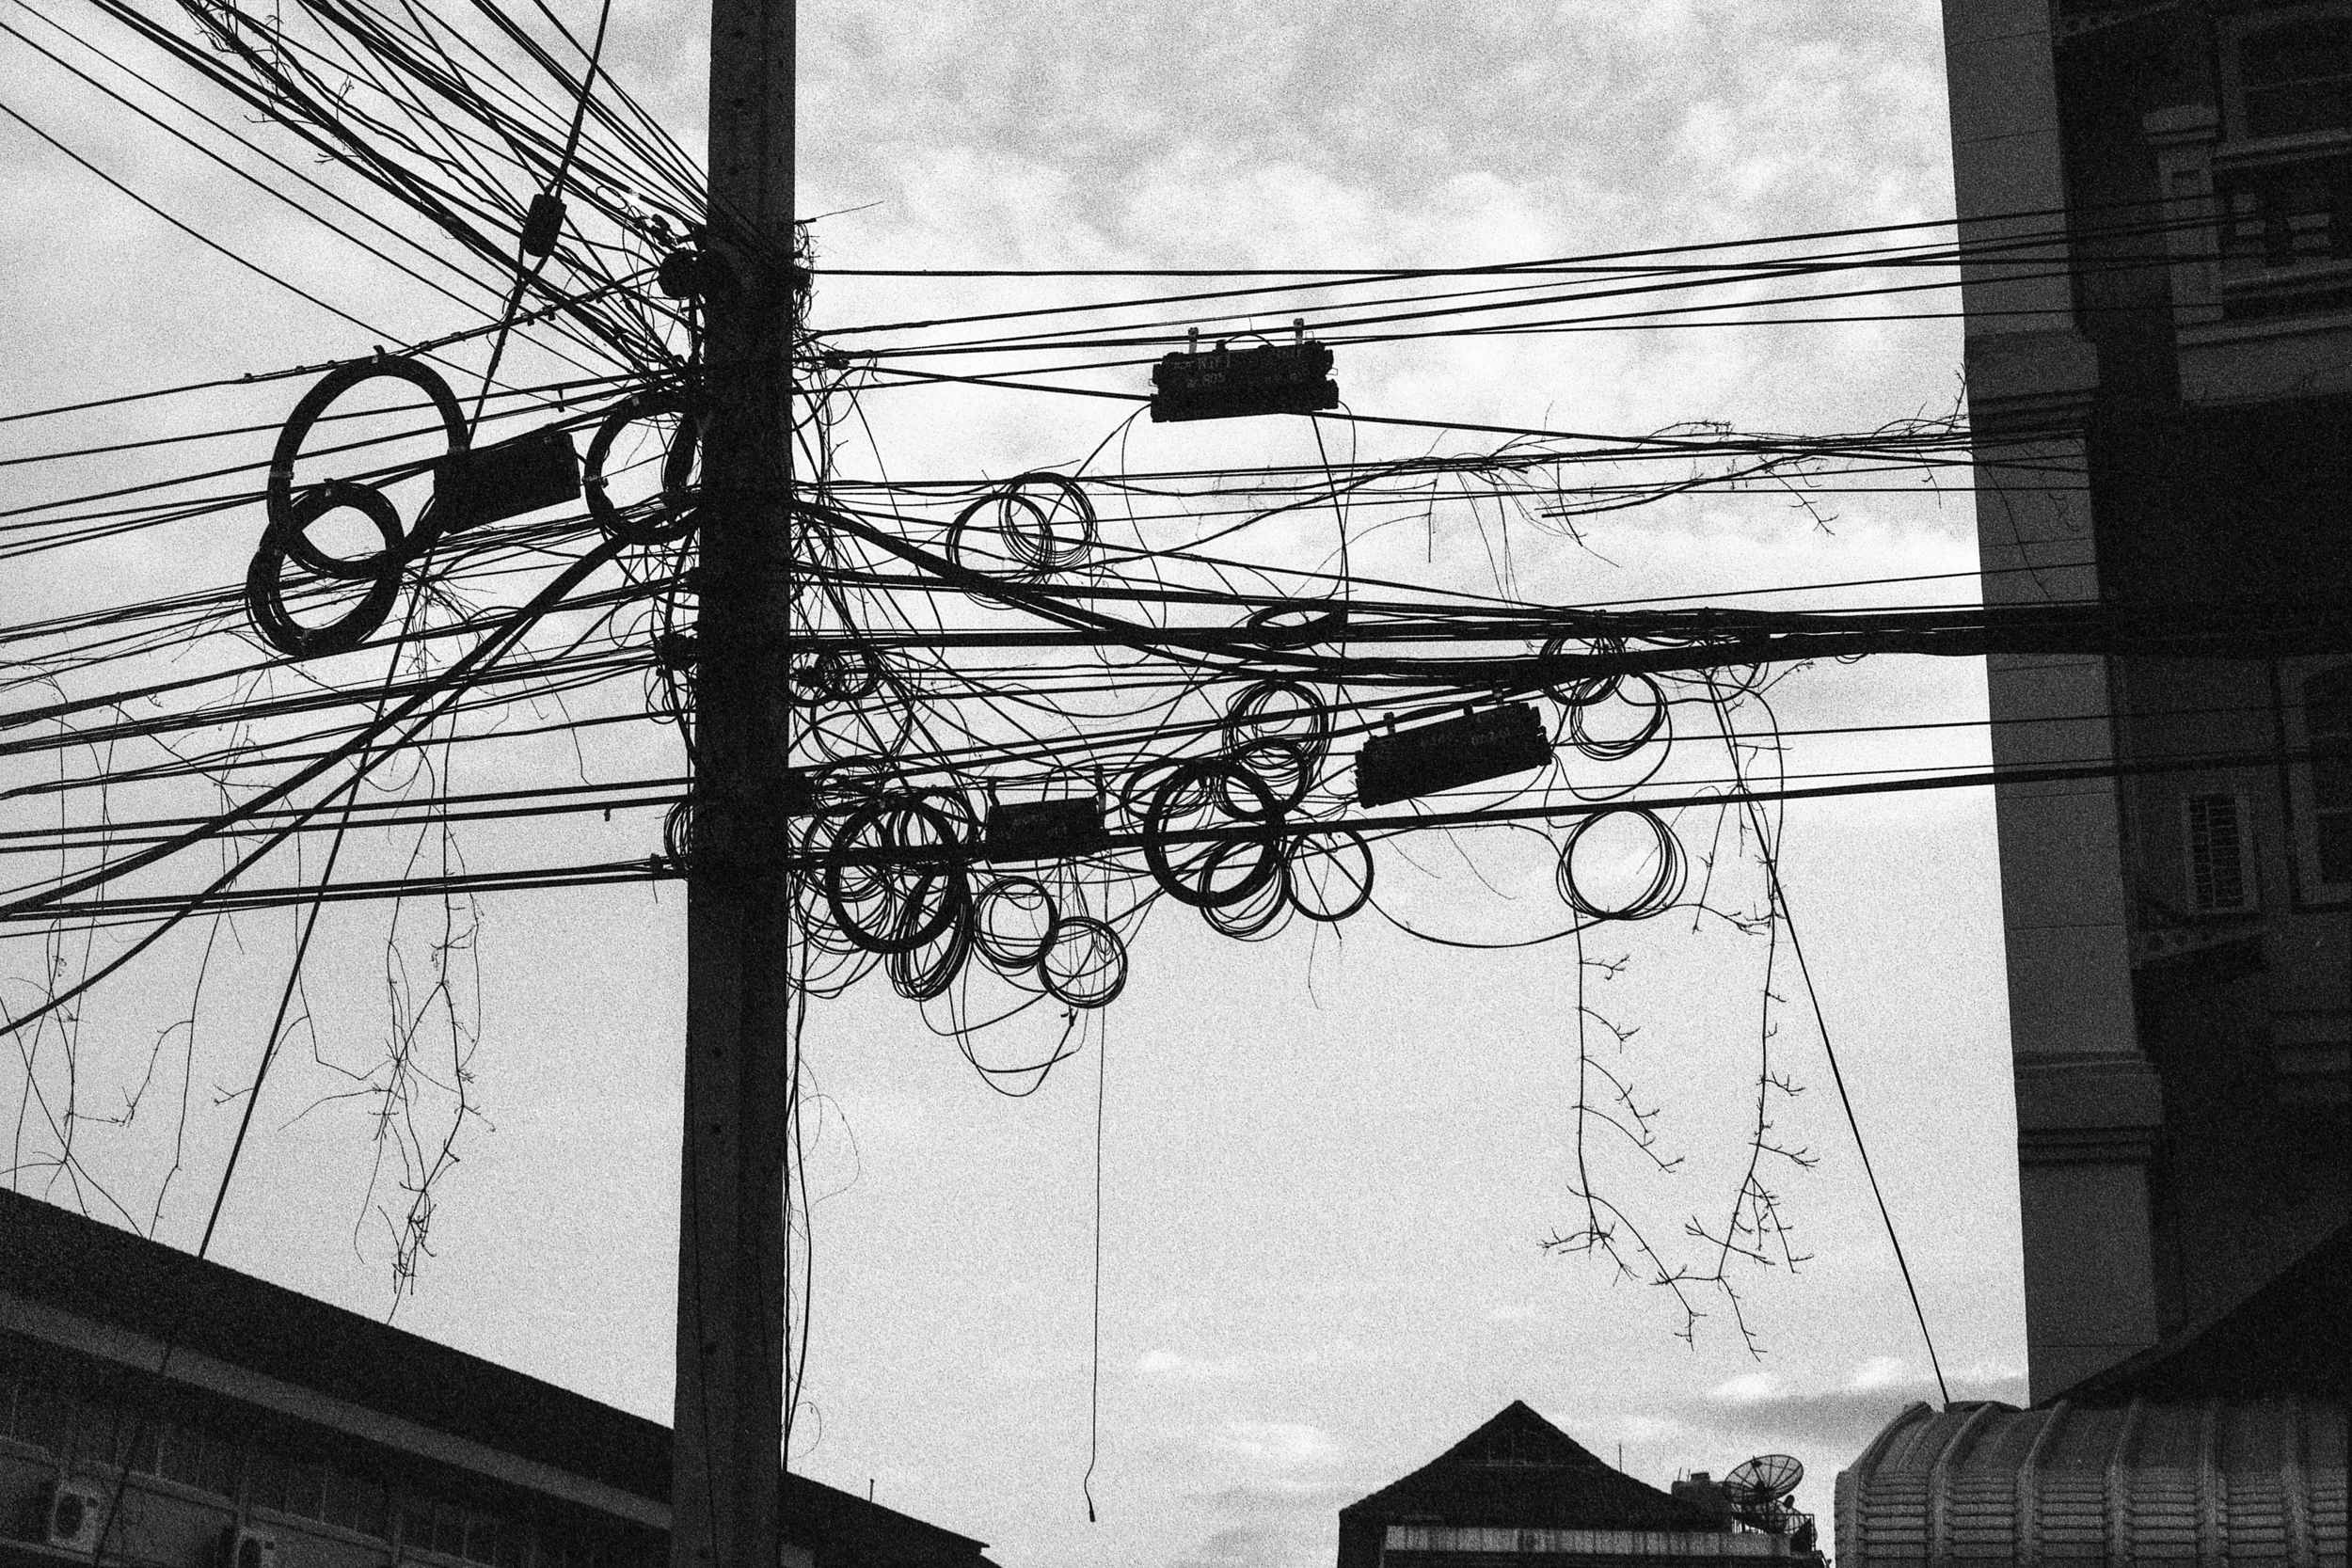 Thailand 11 Electrical Wires.jpg